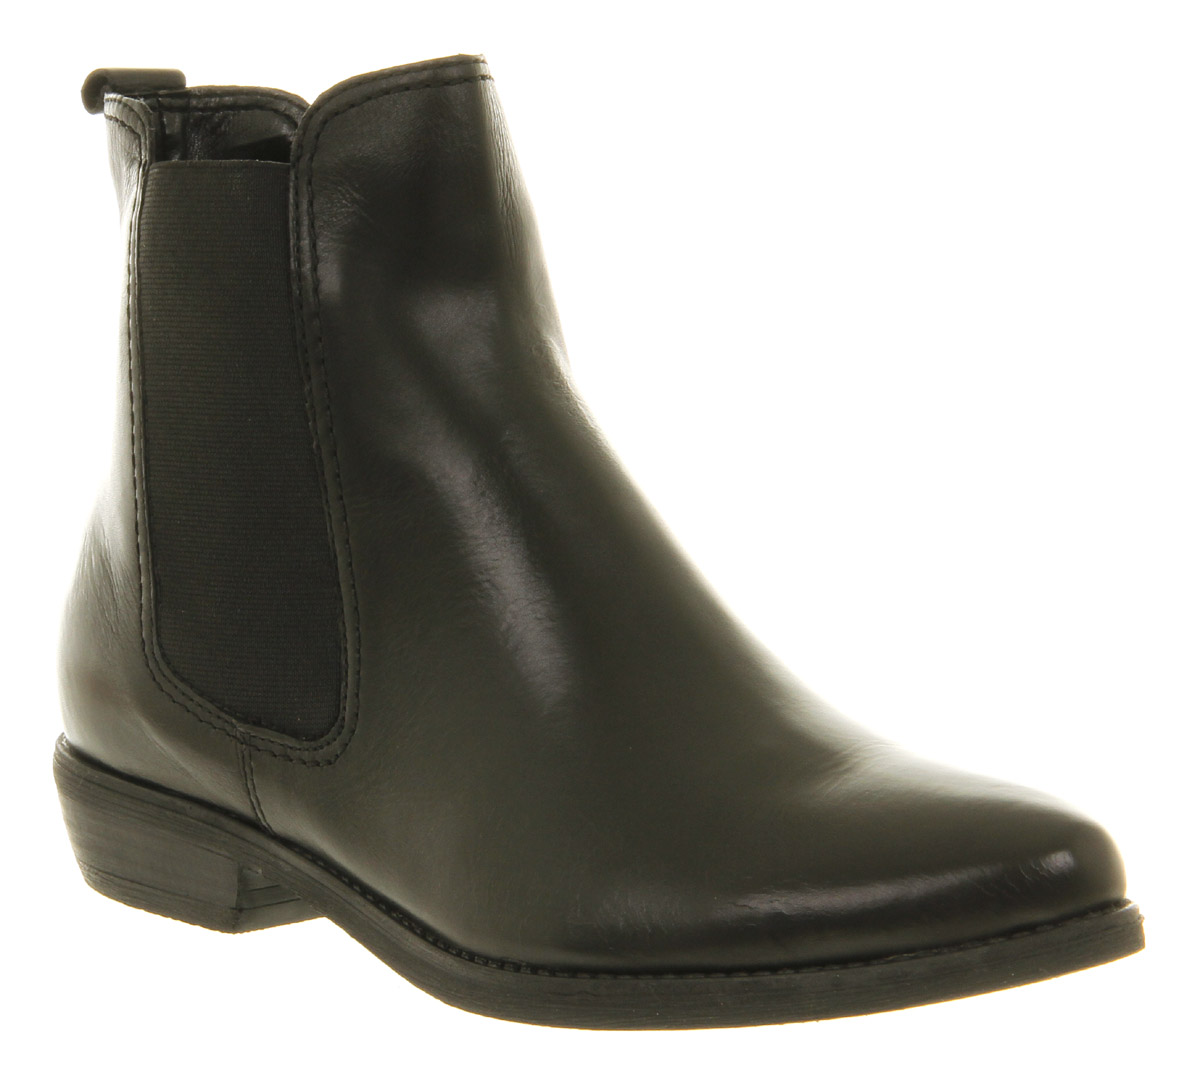 There is something undeniably cool about the Chelsea boot, likely due to its association with the Swingin' London scene, Kendall Jenner, Alexa Chung, and Kanye West.